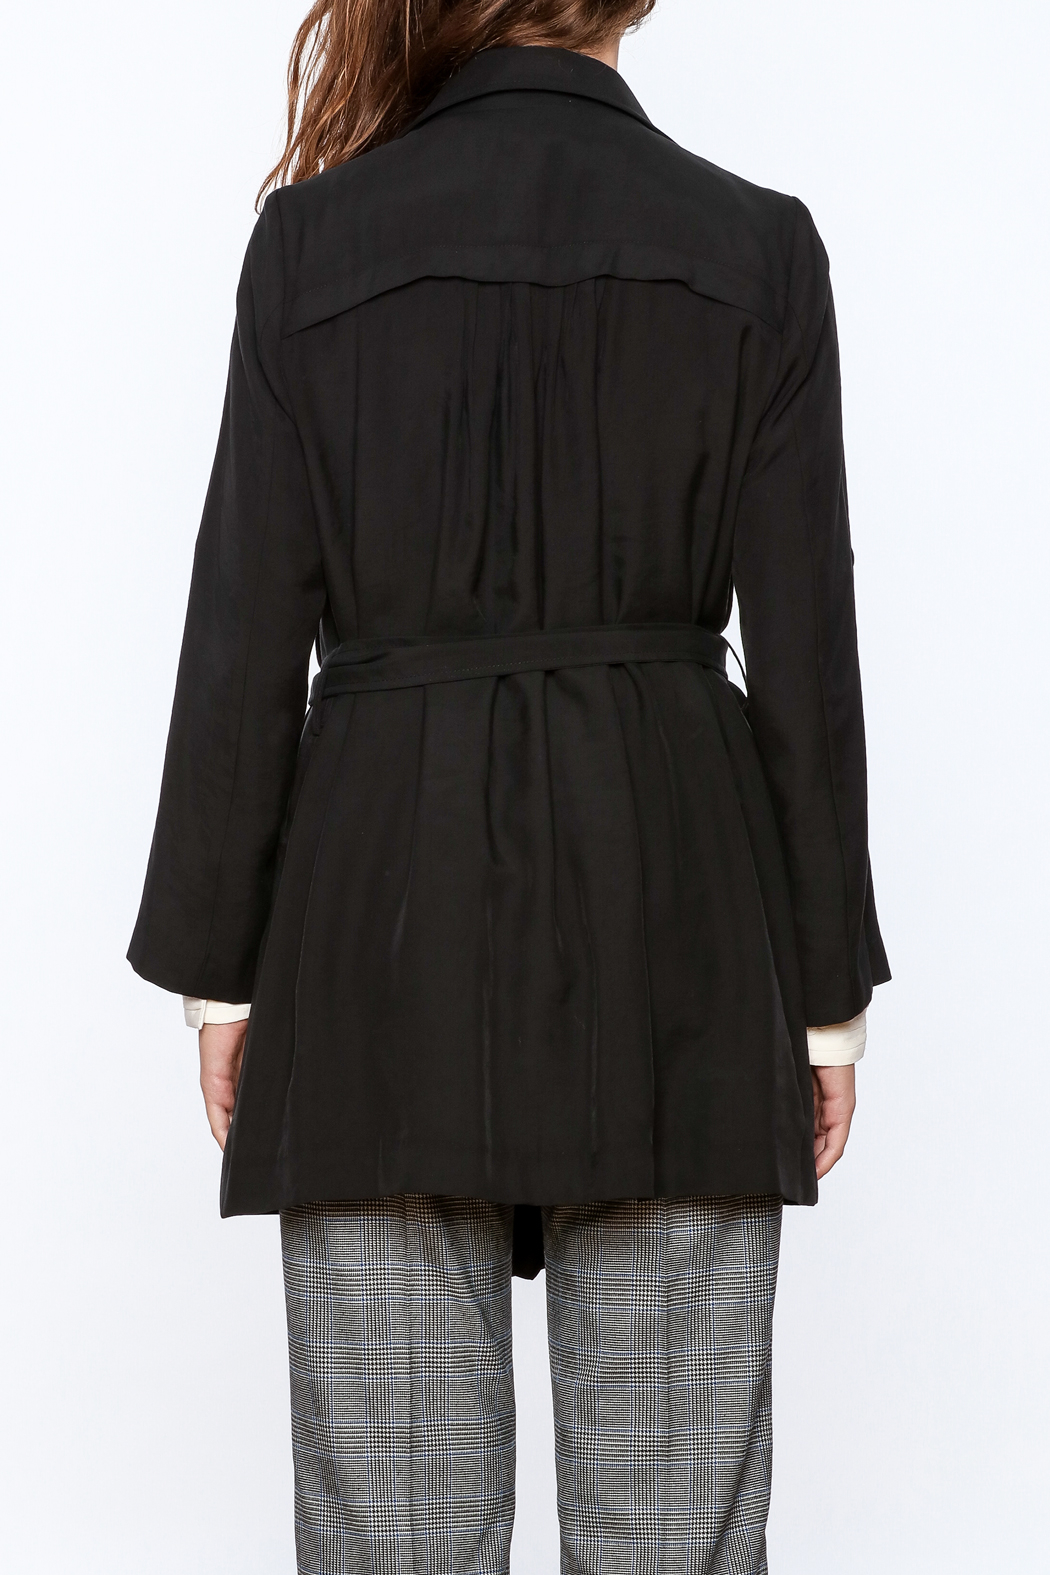 Pinkyotto Black Loose Trench Coat - Back Cropped Image